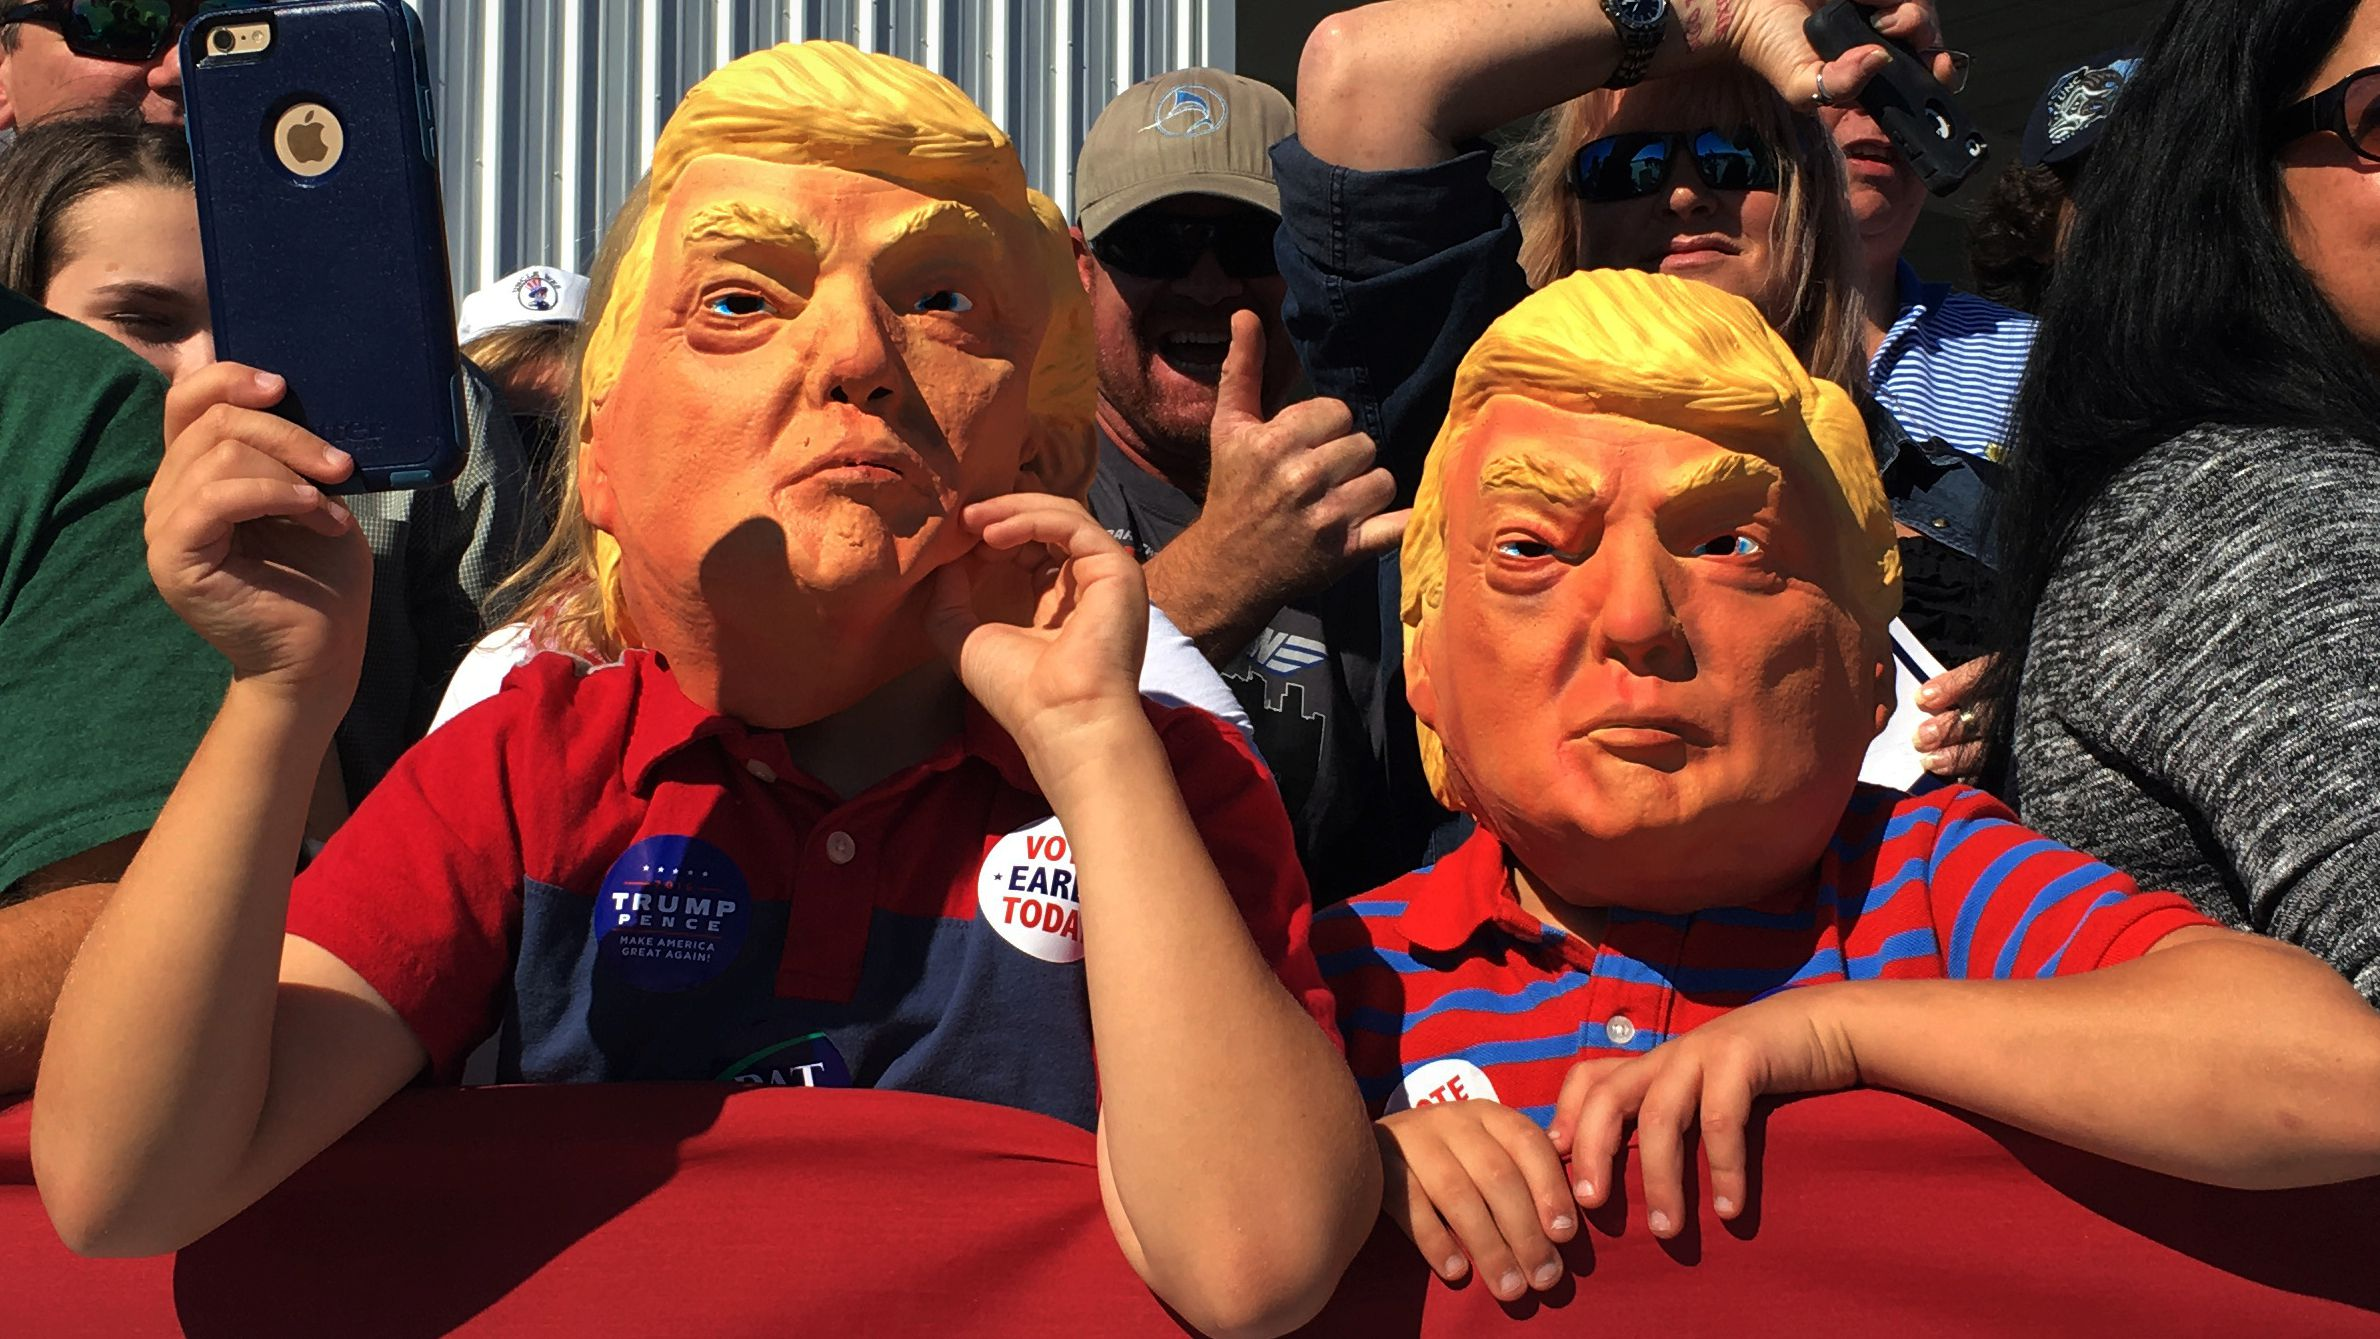 Children wearing masks wait for Republican presidential nominee Donald Trump to hold a campaign rally.